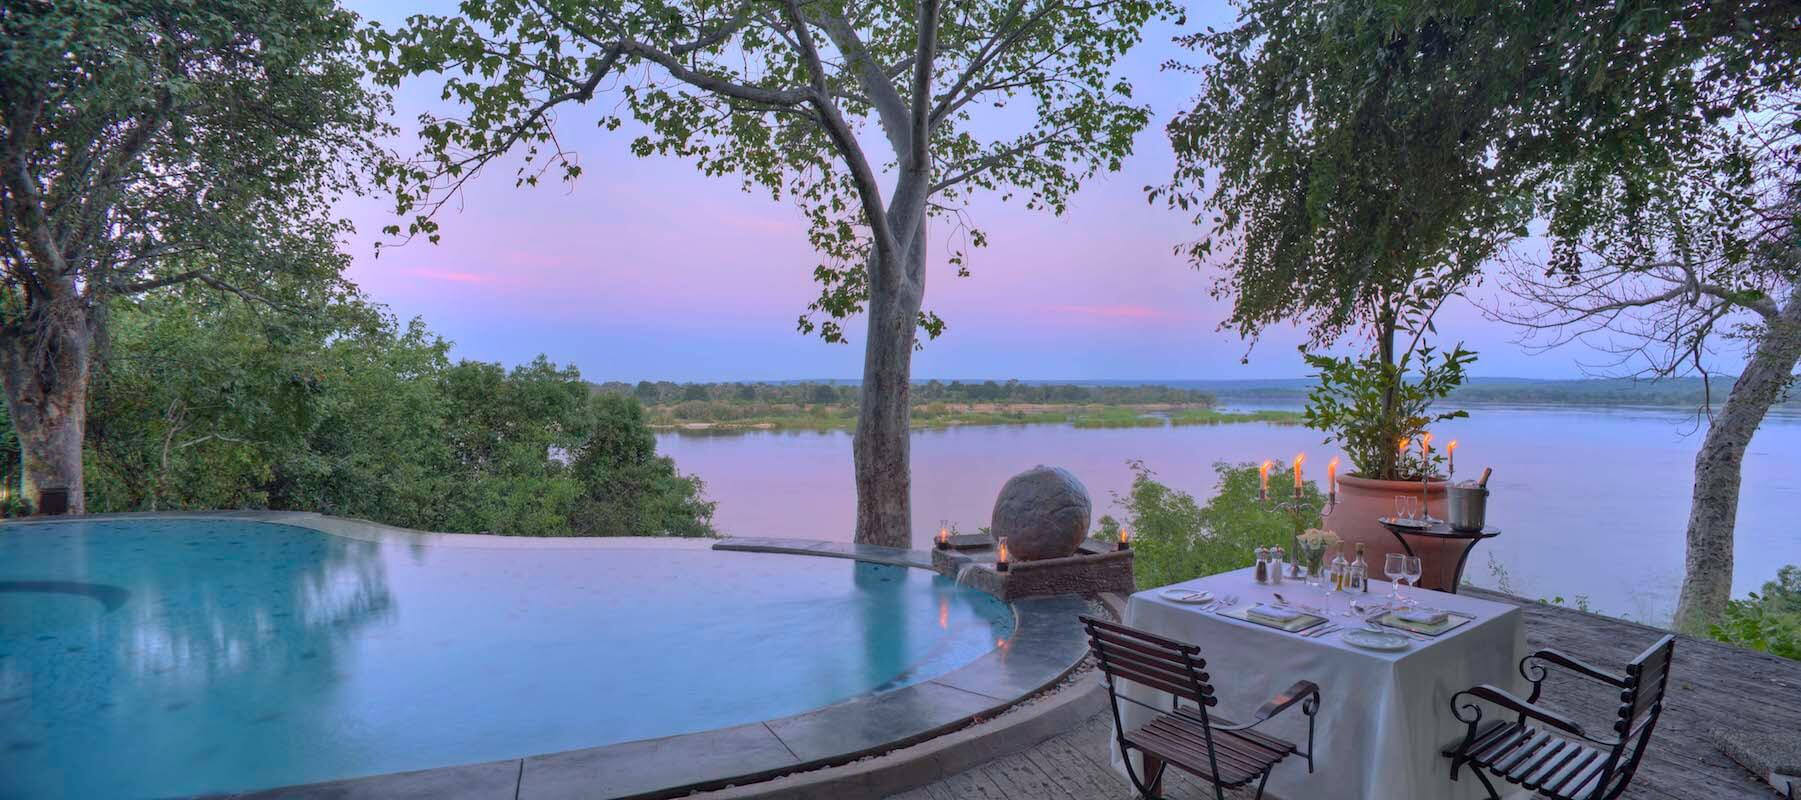 Zambia_VictoriaFalls_The River Club_Private Dining_Pool